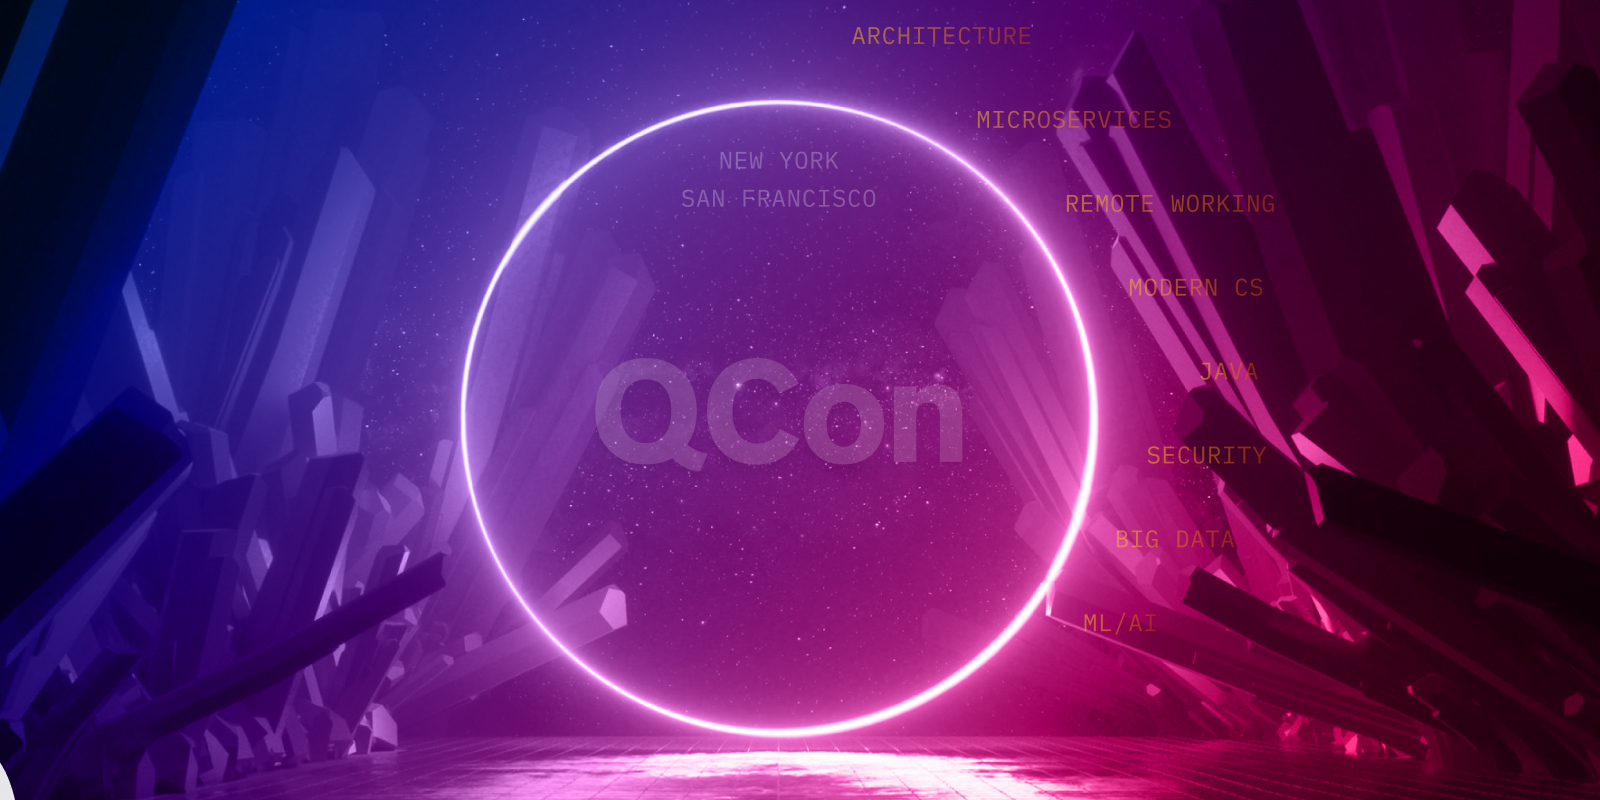 Stay ahead of the adoption curve. Discover emerging software trends and innovations. Attend QCon Plus, a hybrid international software development conference.